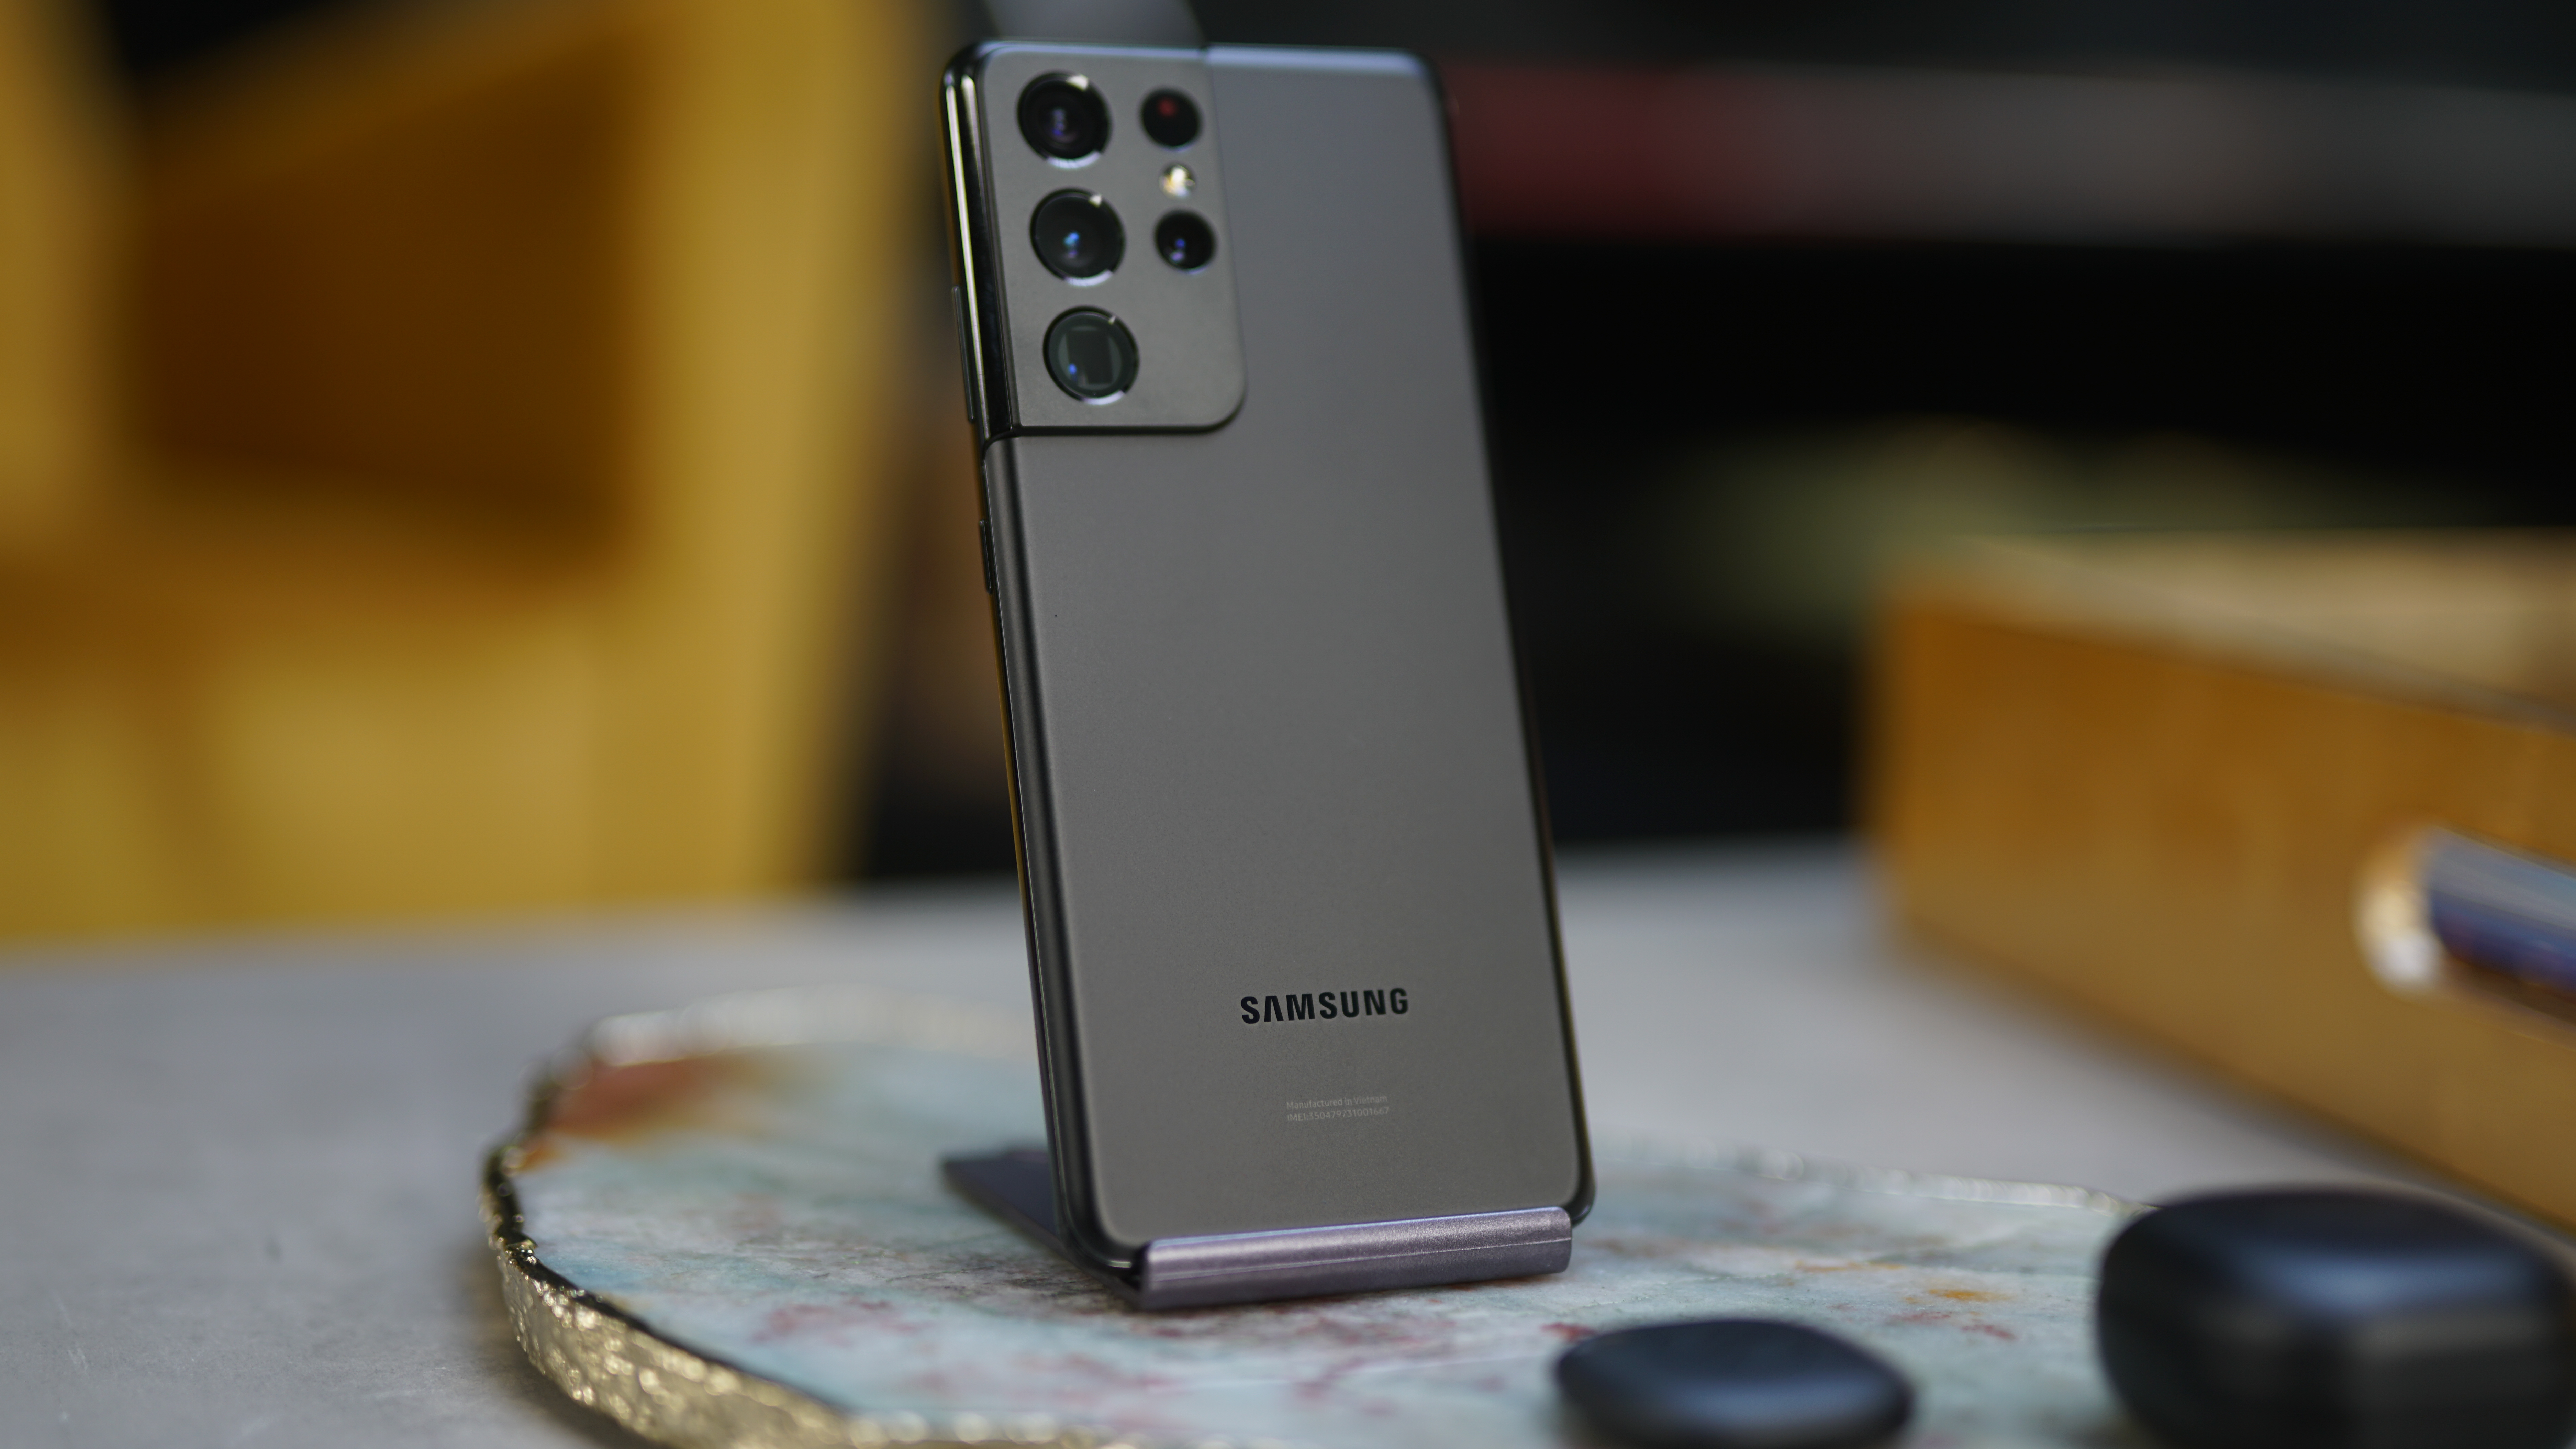 A Samsung Galaxy S21 Ultra from the back in a plain shade